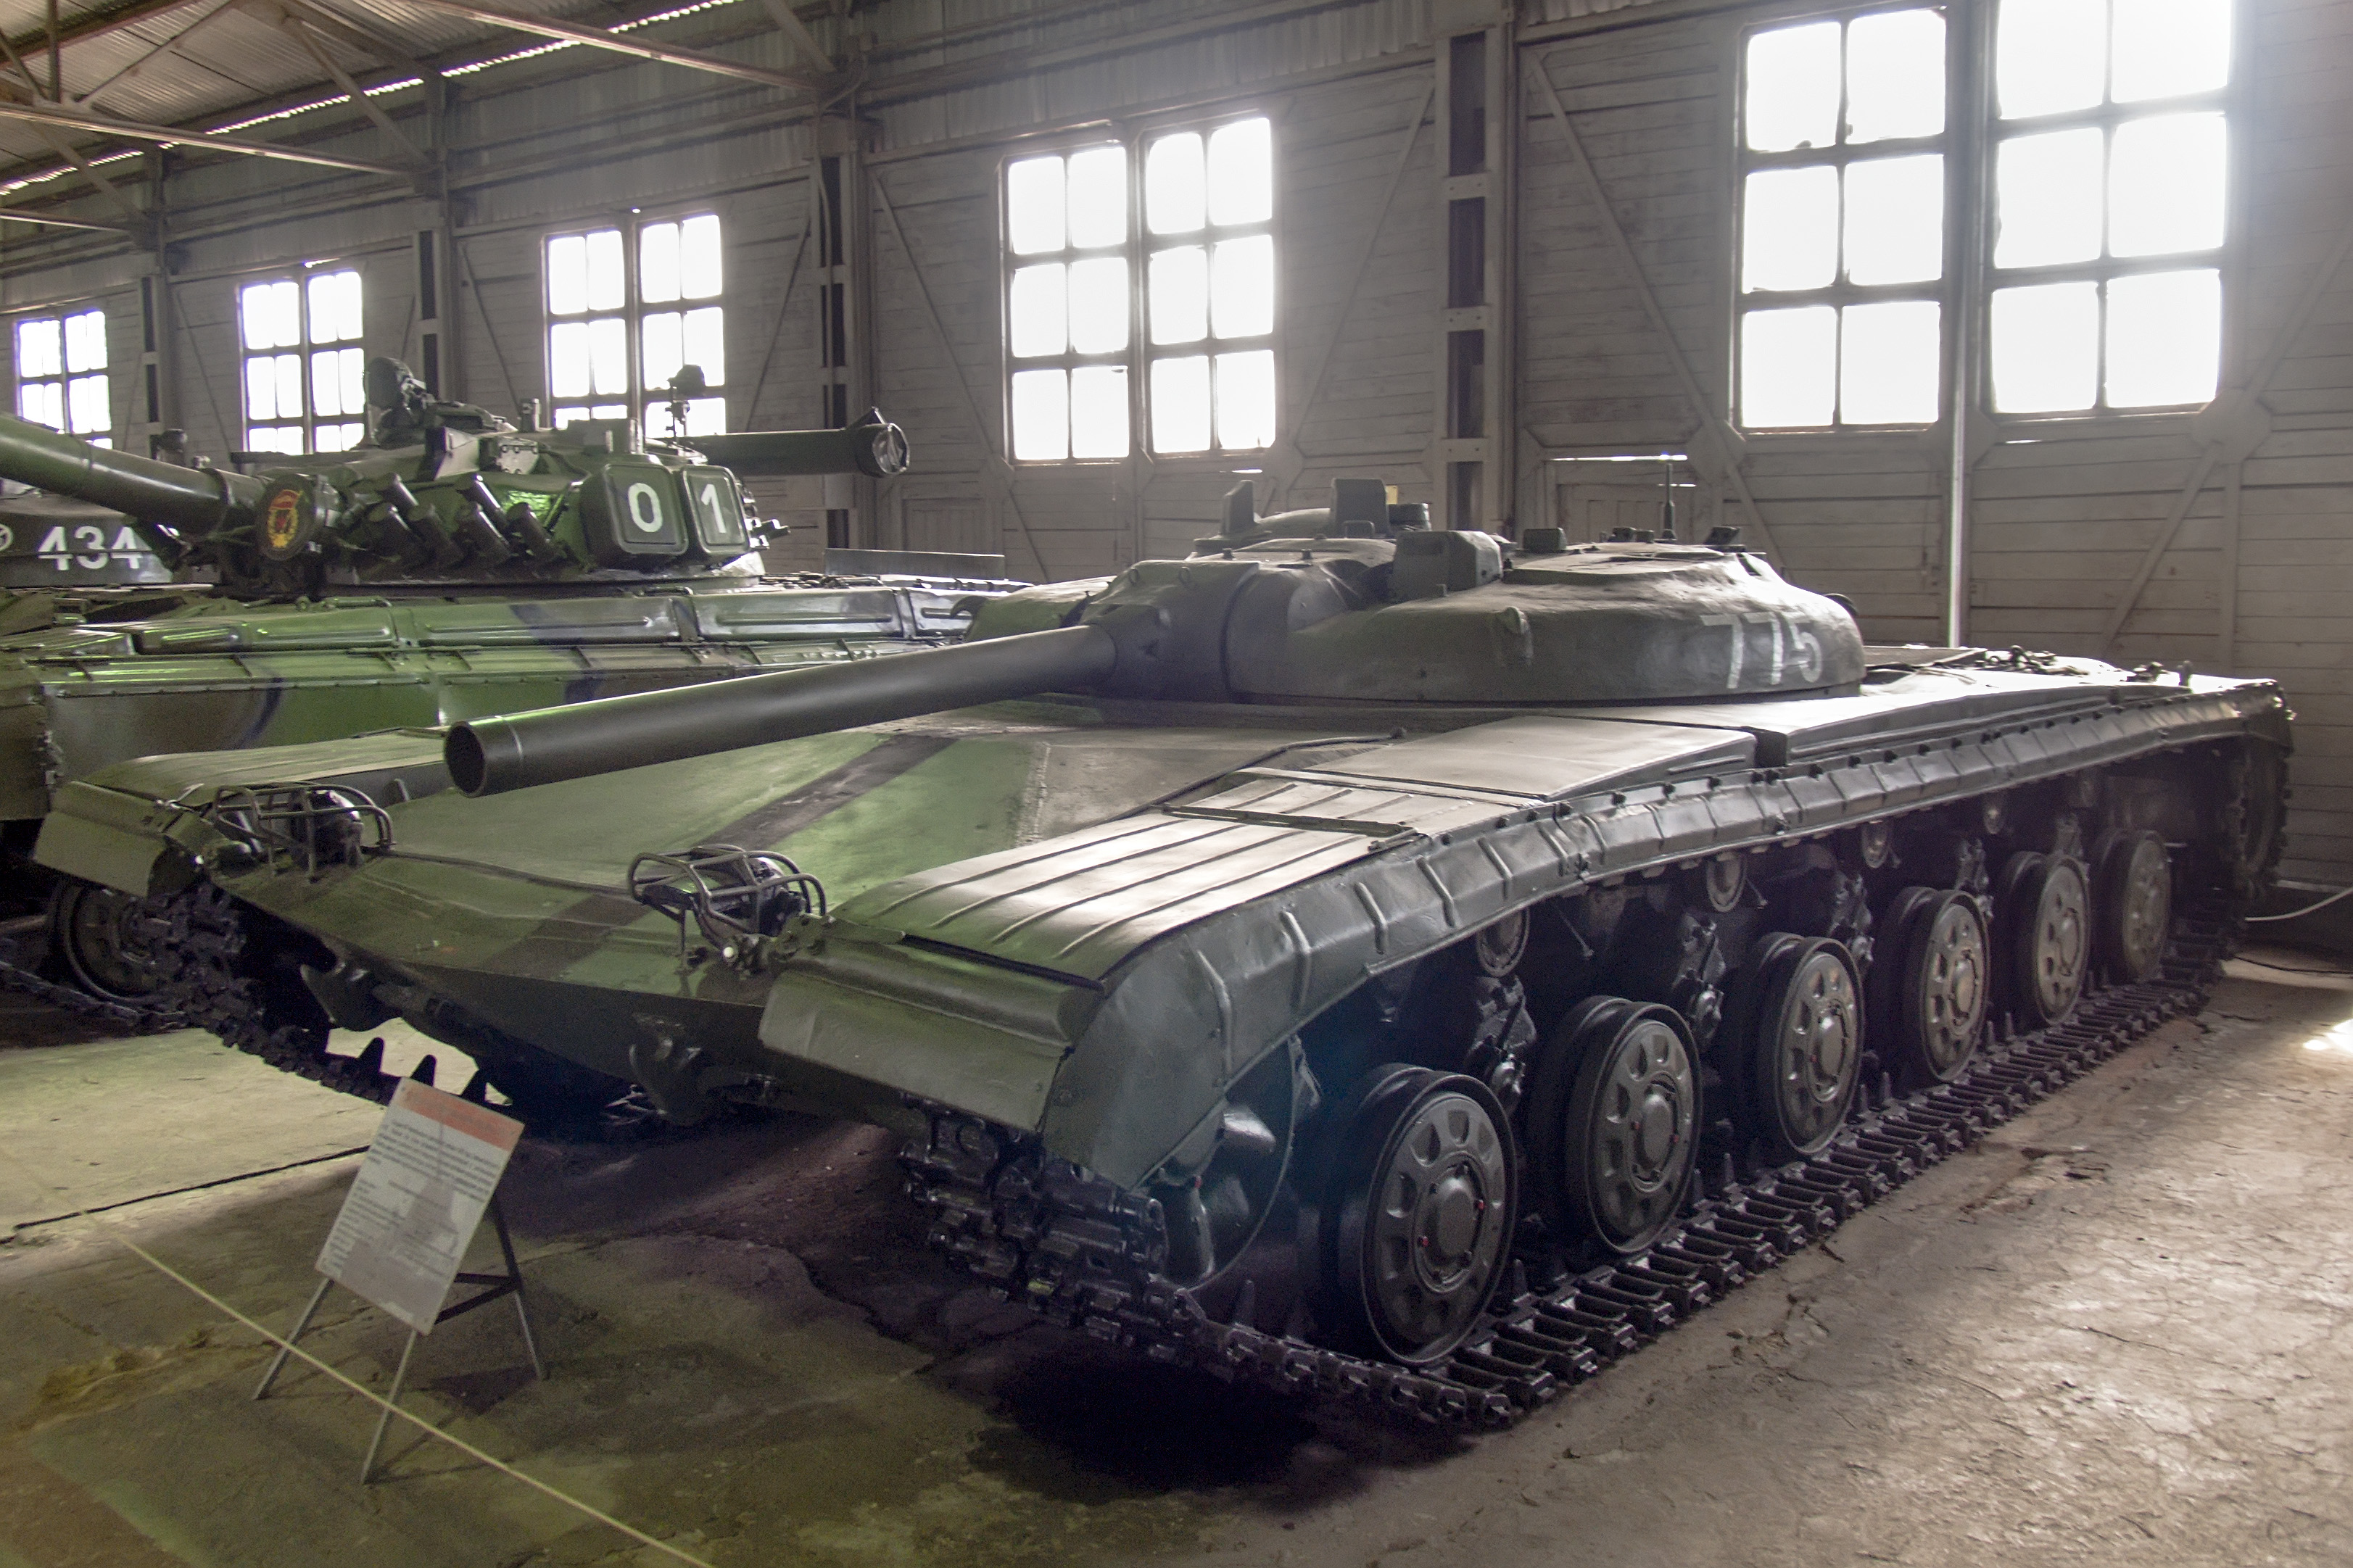 Armoured Vehicles For Sale >> File:Object 775 in the Kubinka Museum.jpg - Wikimedia Commons